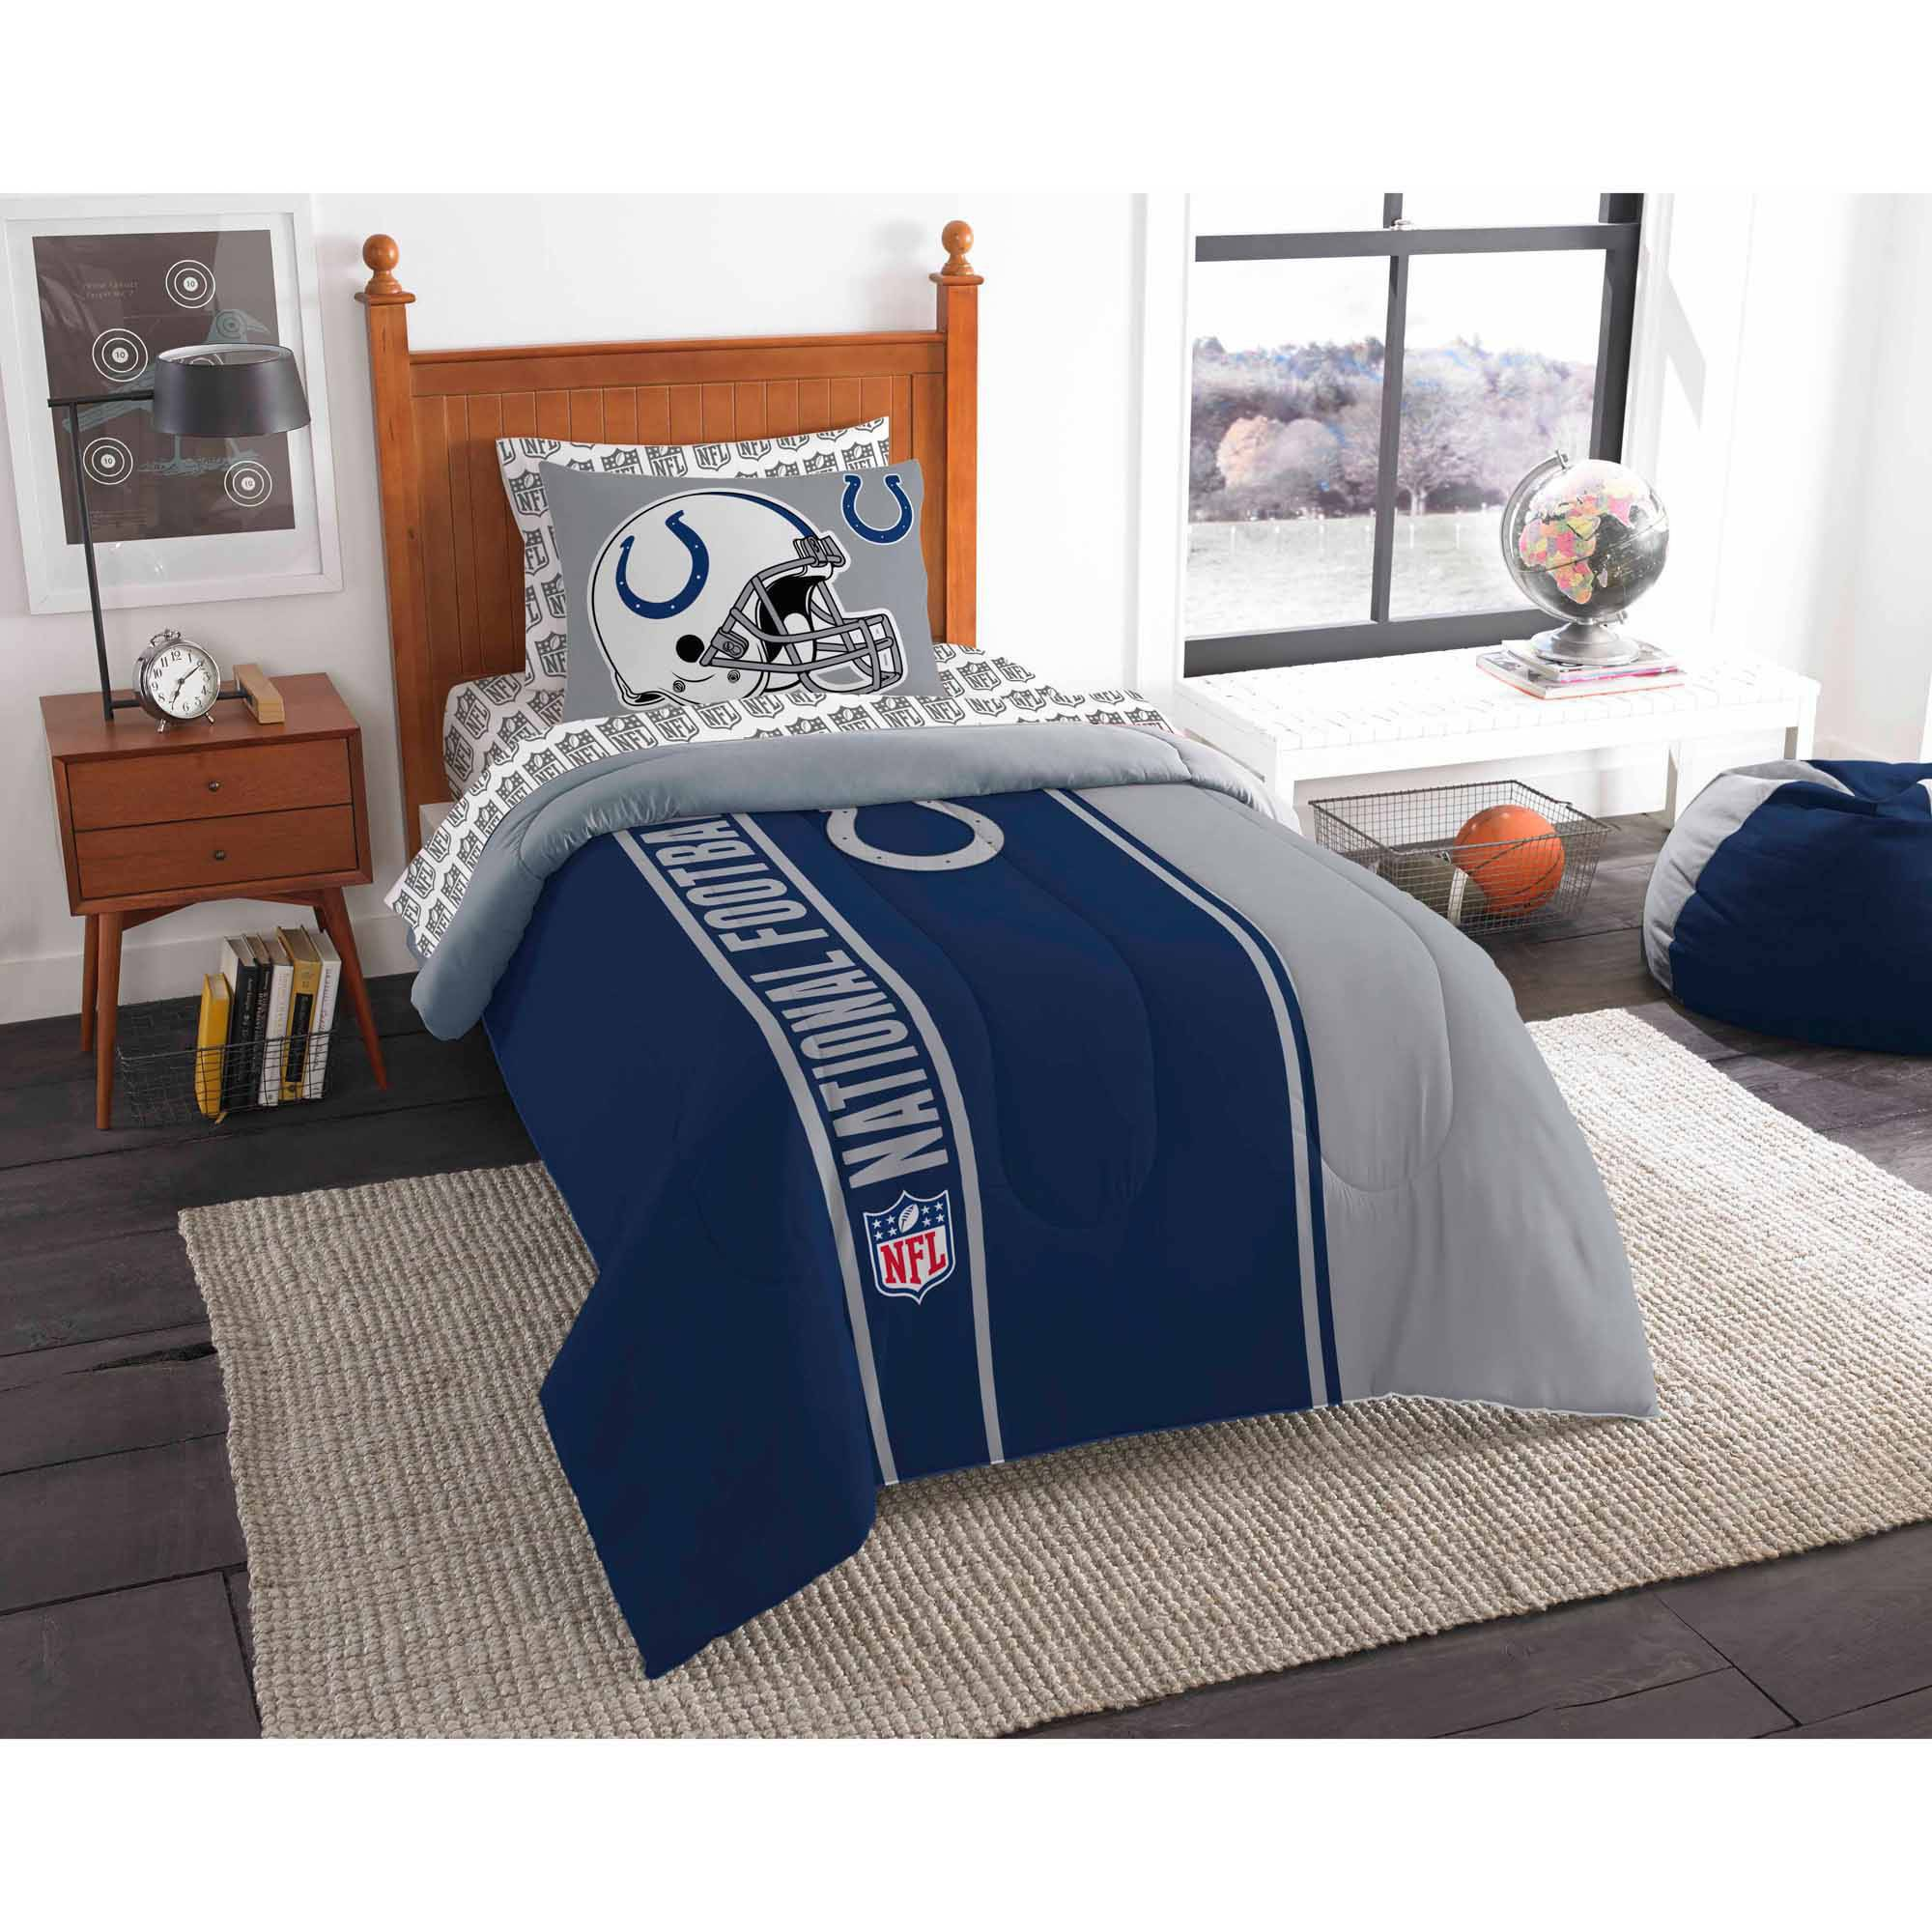 NFL Indianapolis Colts Soft and Cozy Bed in a Bag Complete Bedding Set